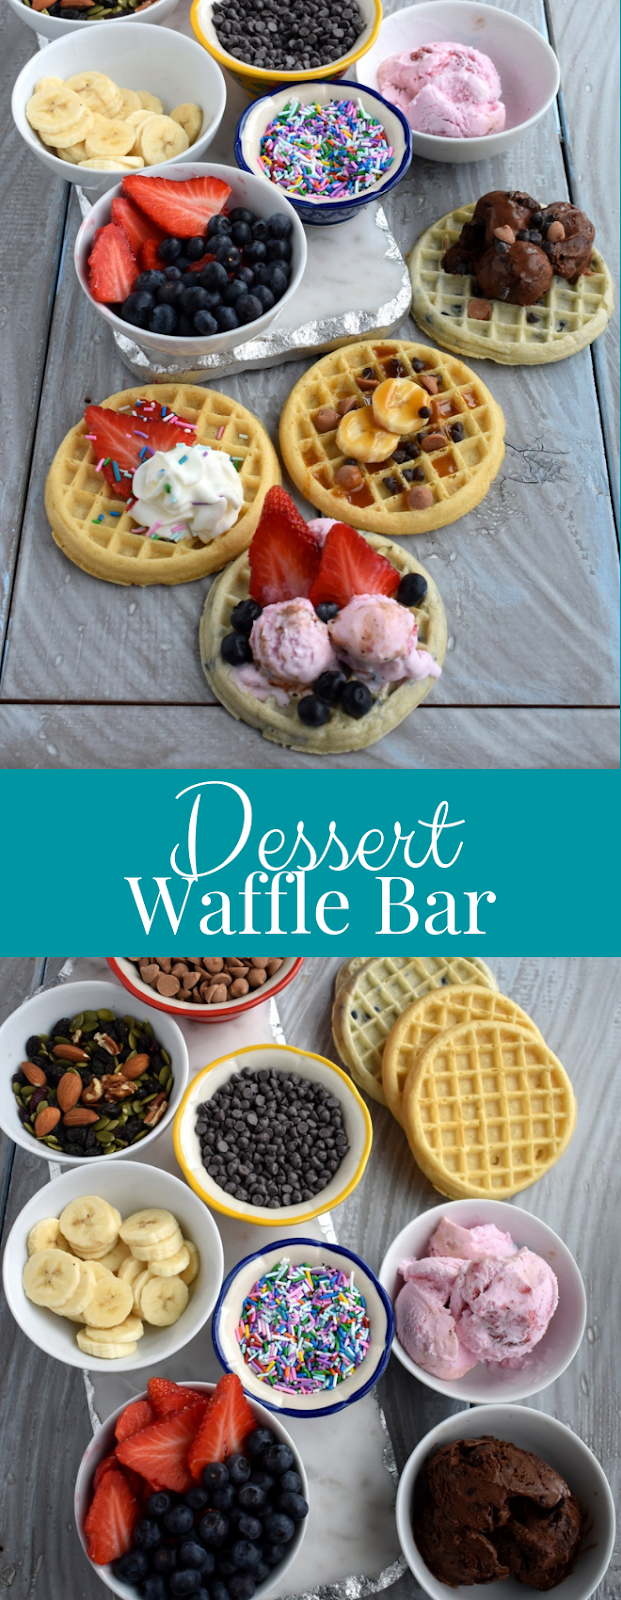 Dessert Waffle Bar toppings photo